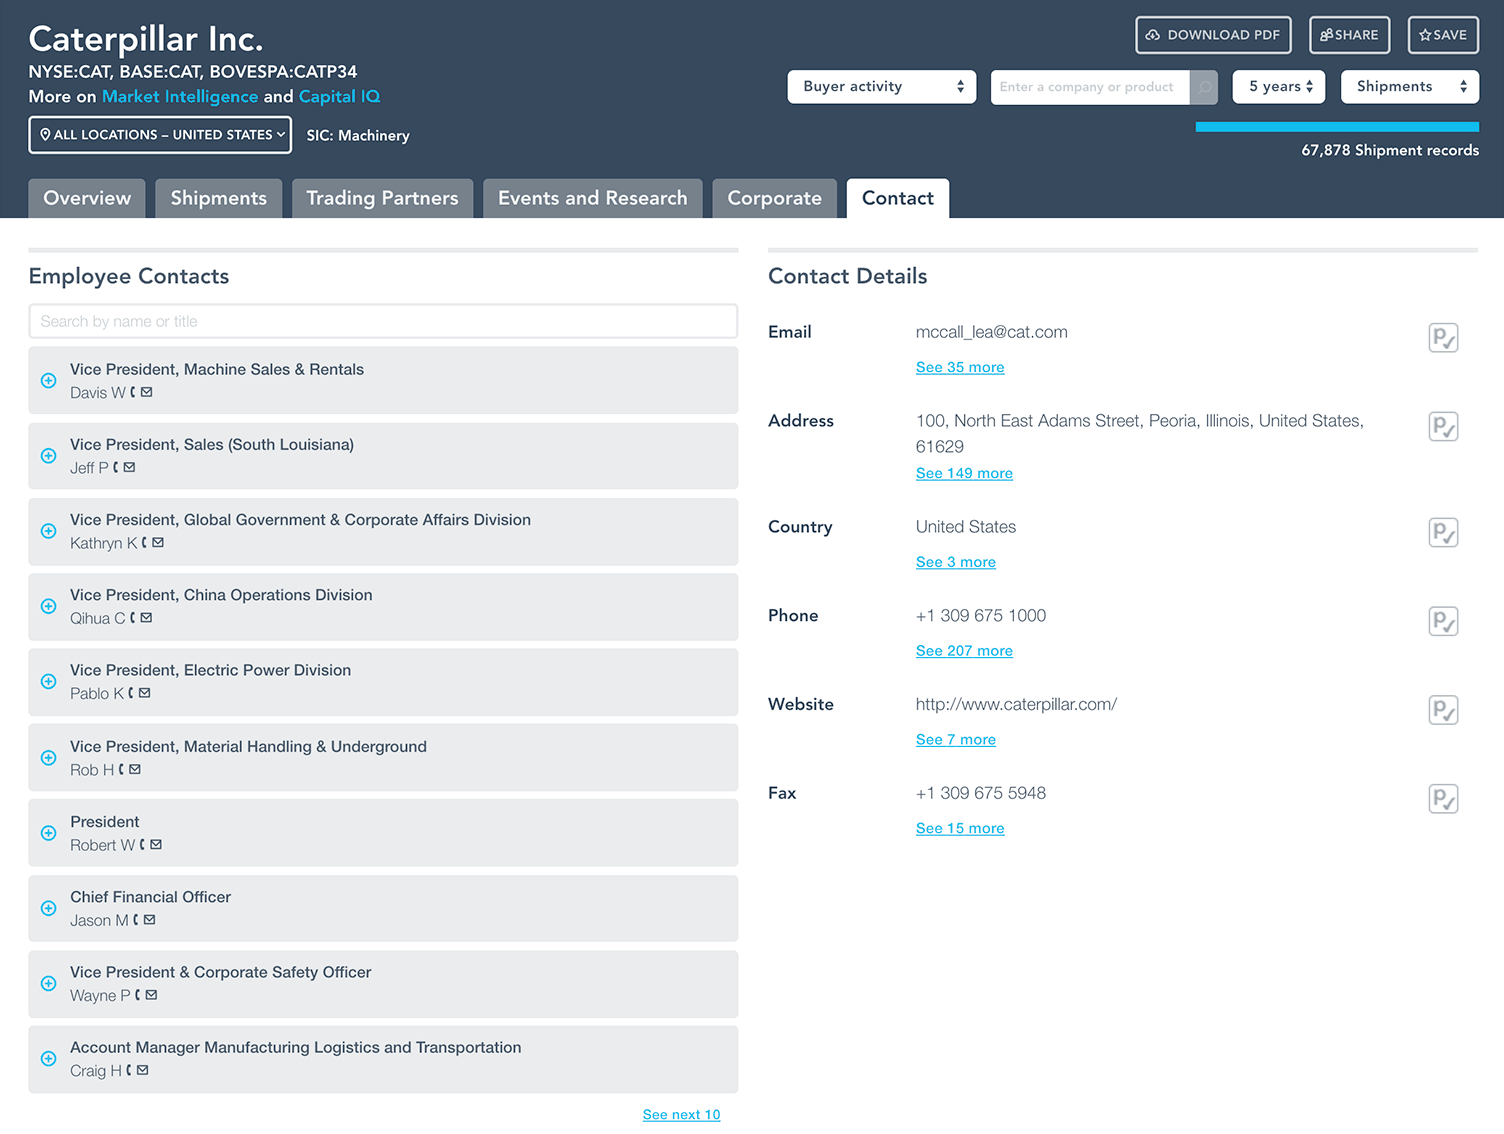 Contacts accessible in a Buyer profile in the U.S.